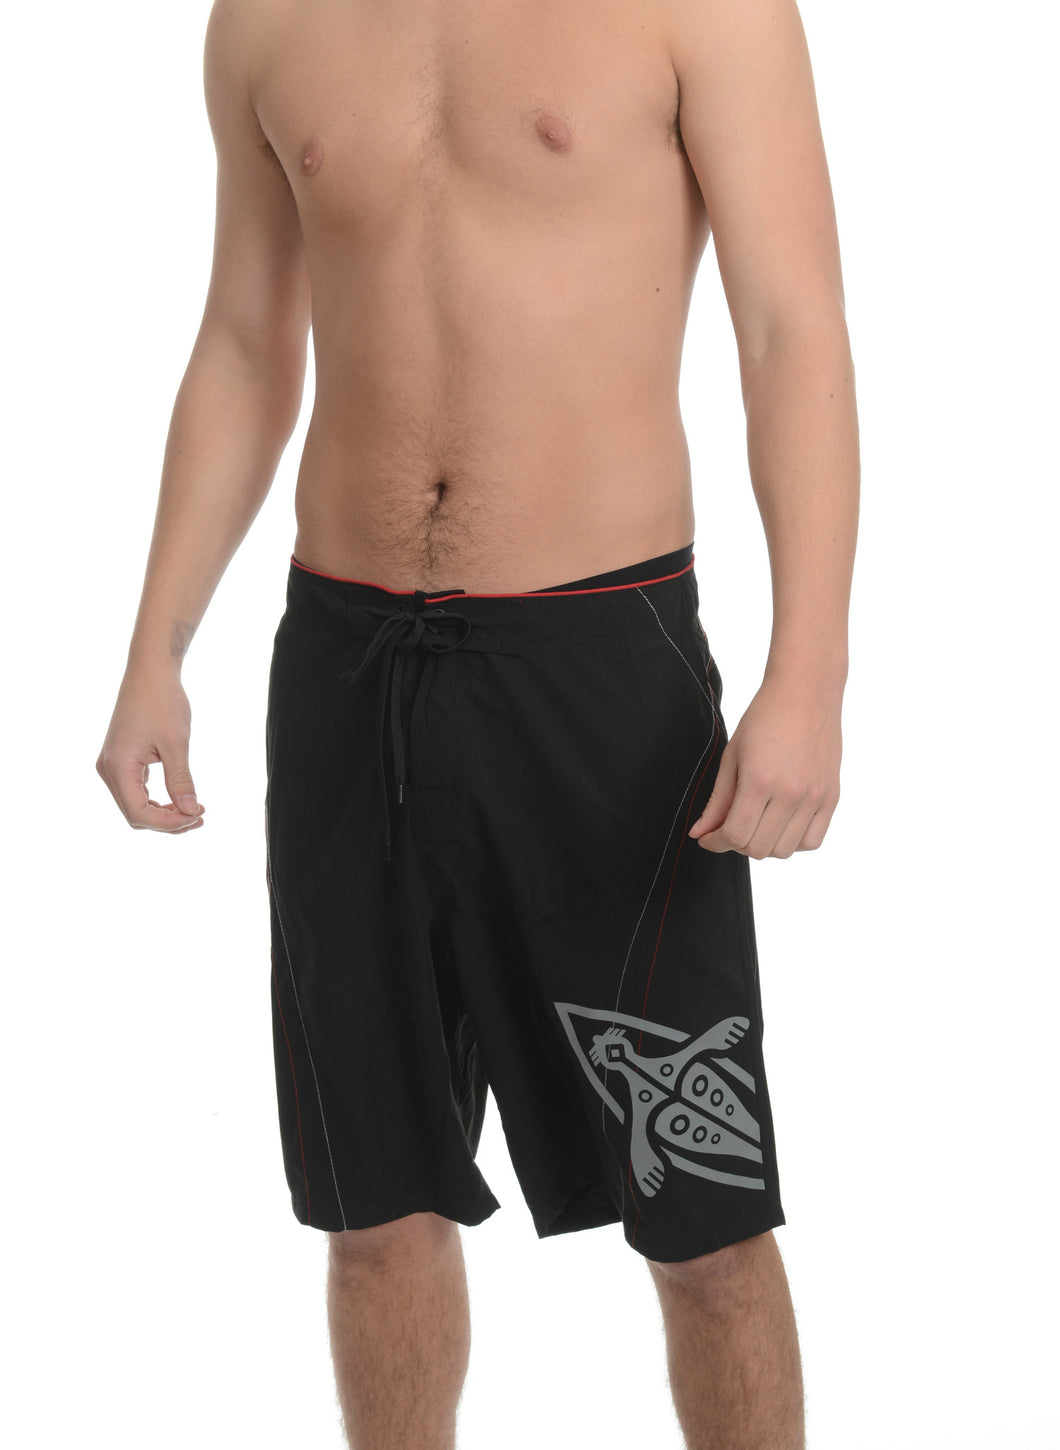 Sealblades board shorts